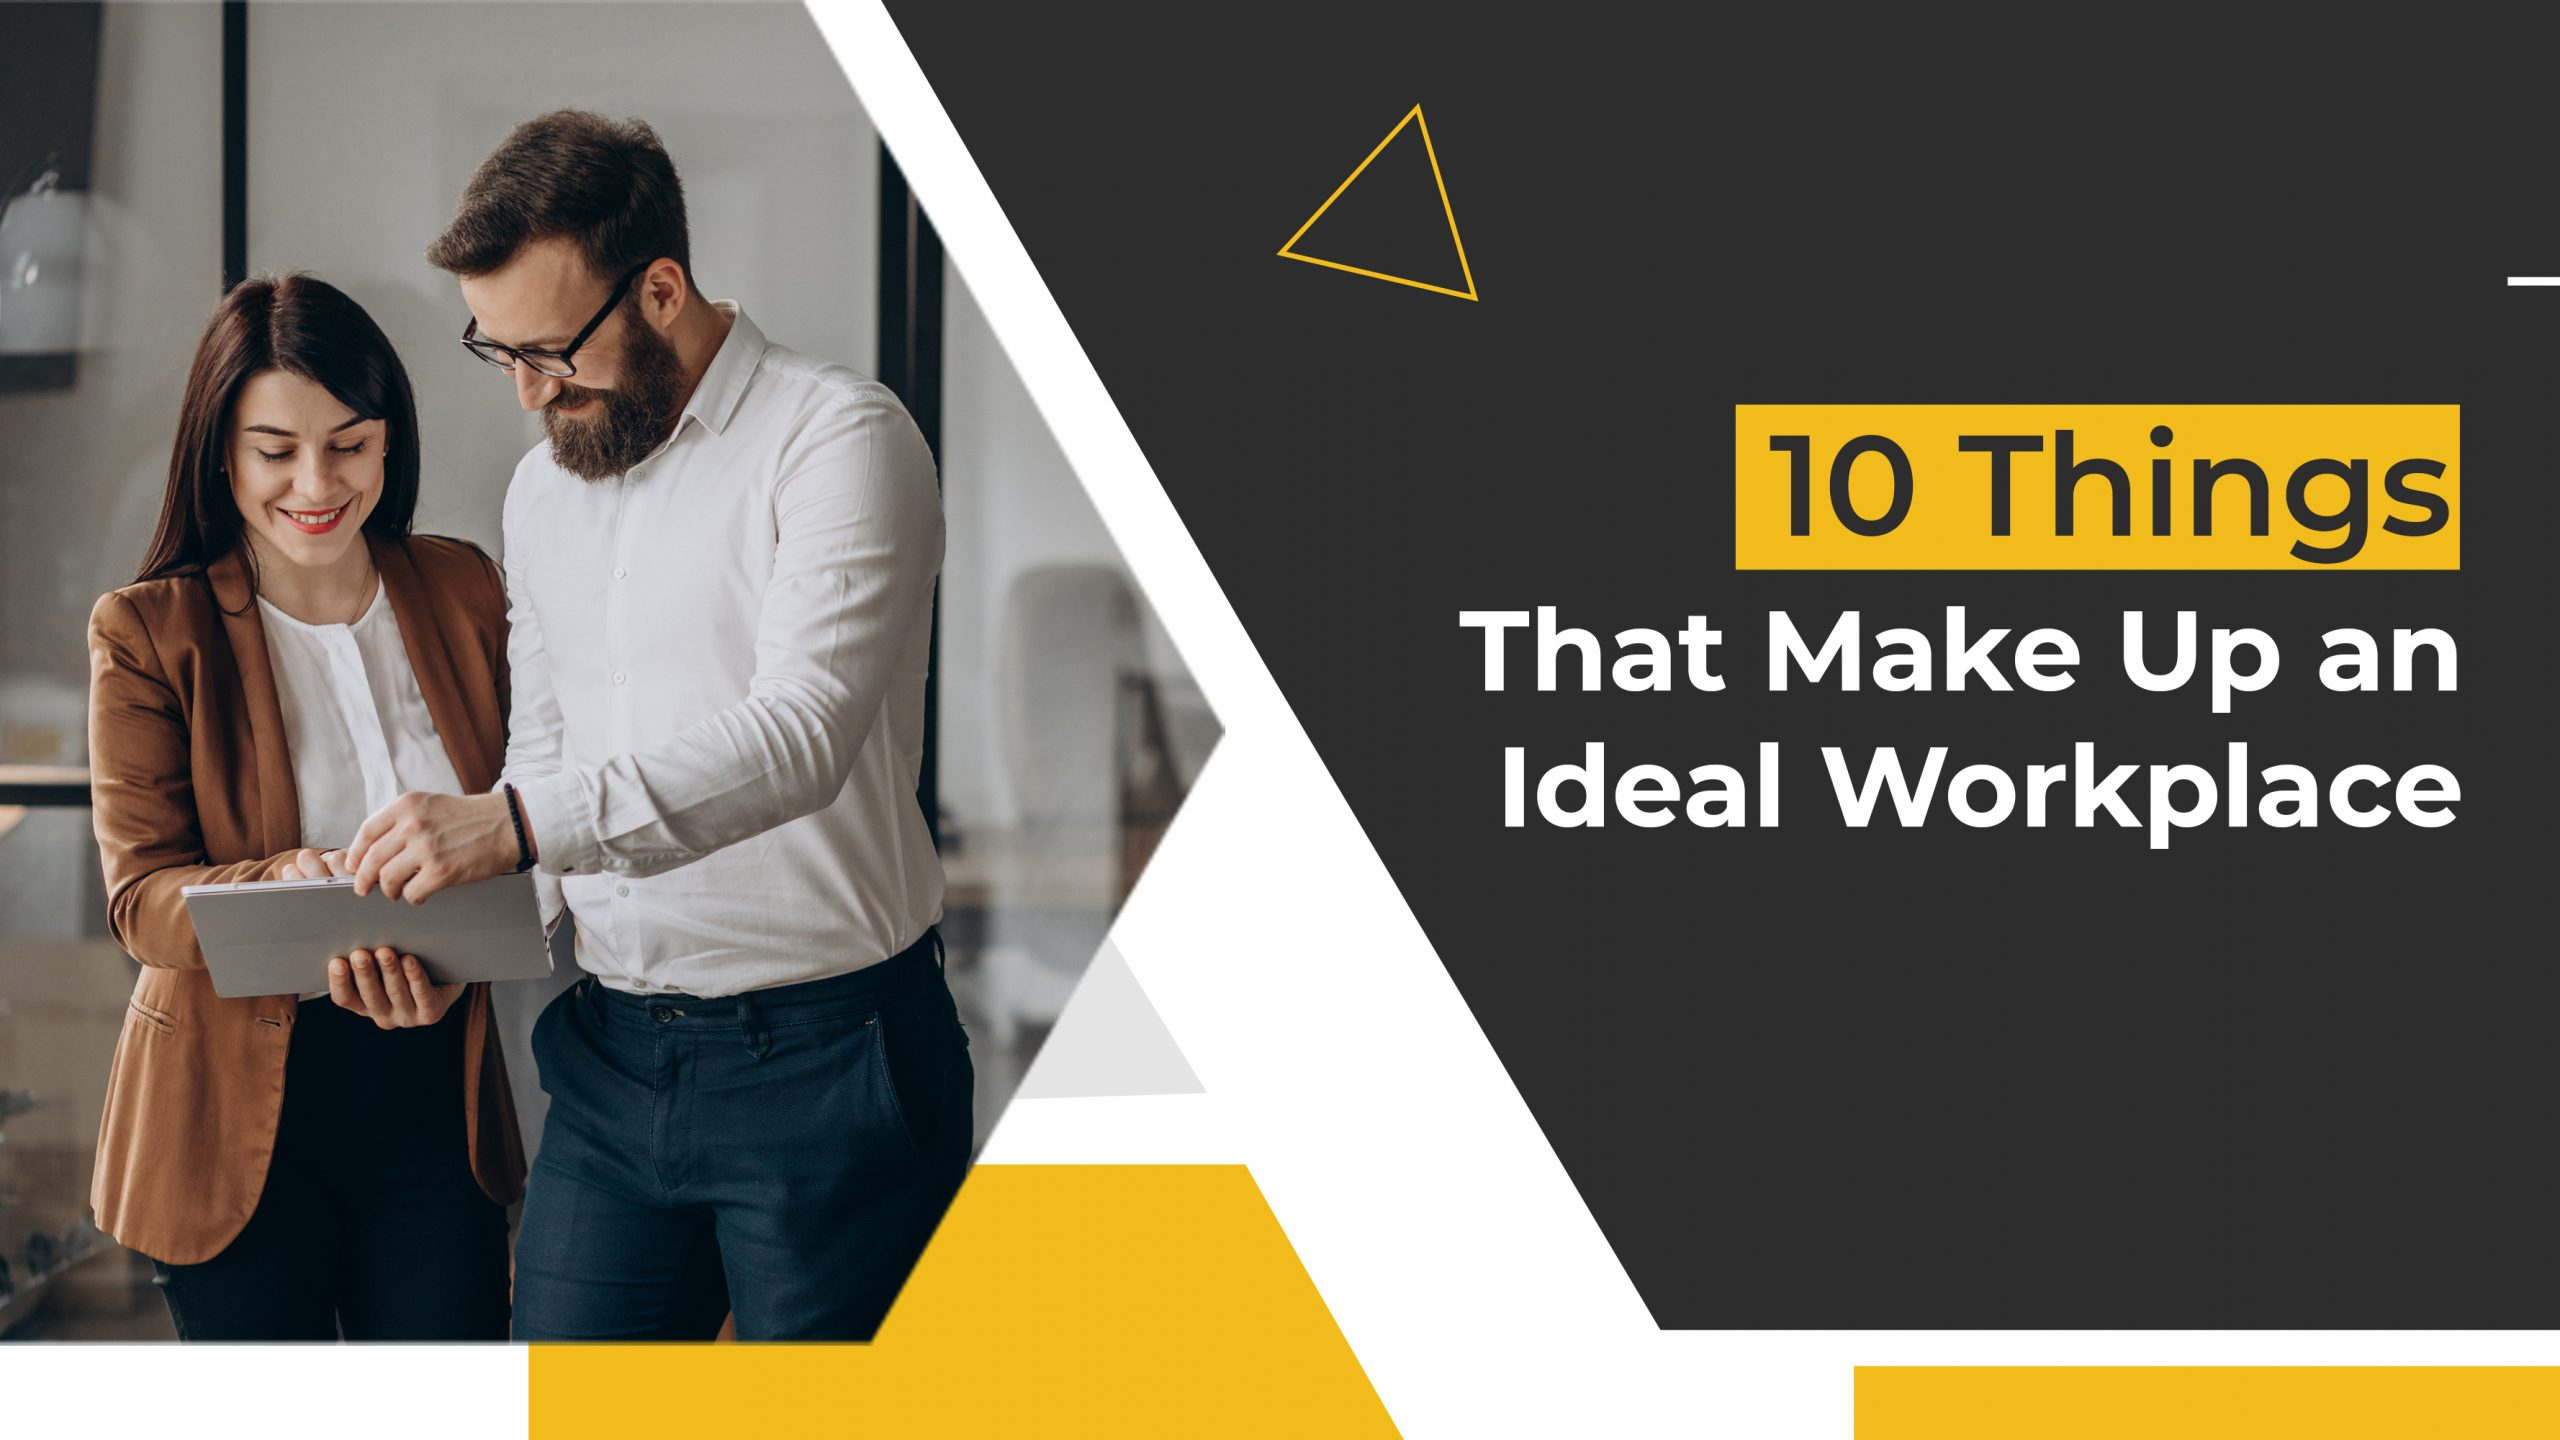 10 Things That Make Up an Ideal Workplace